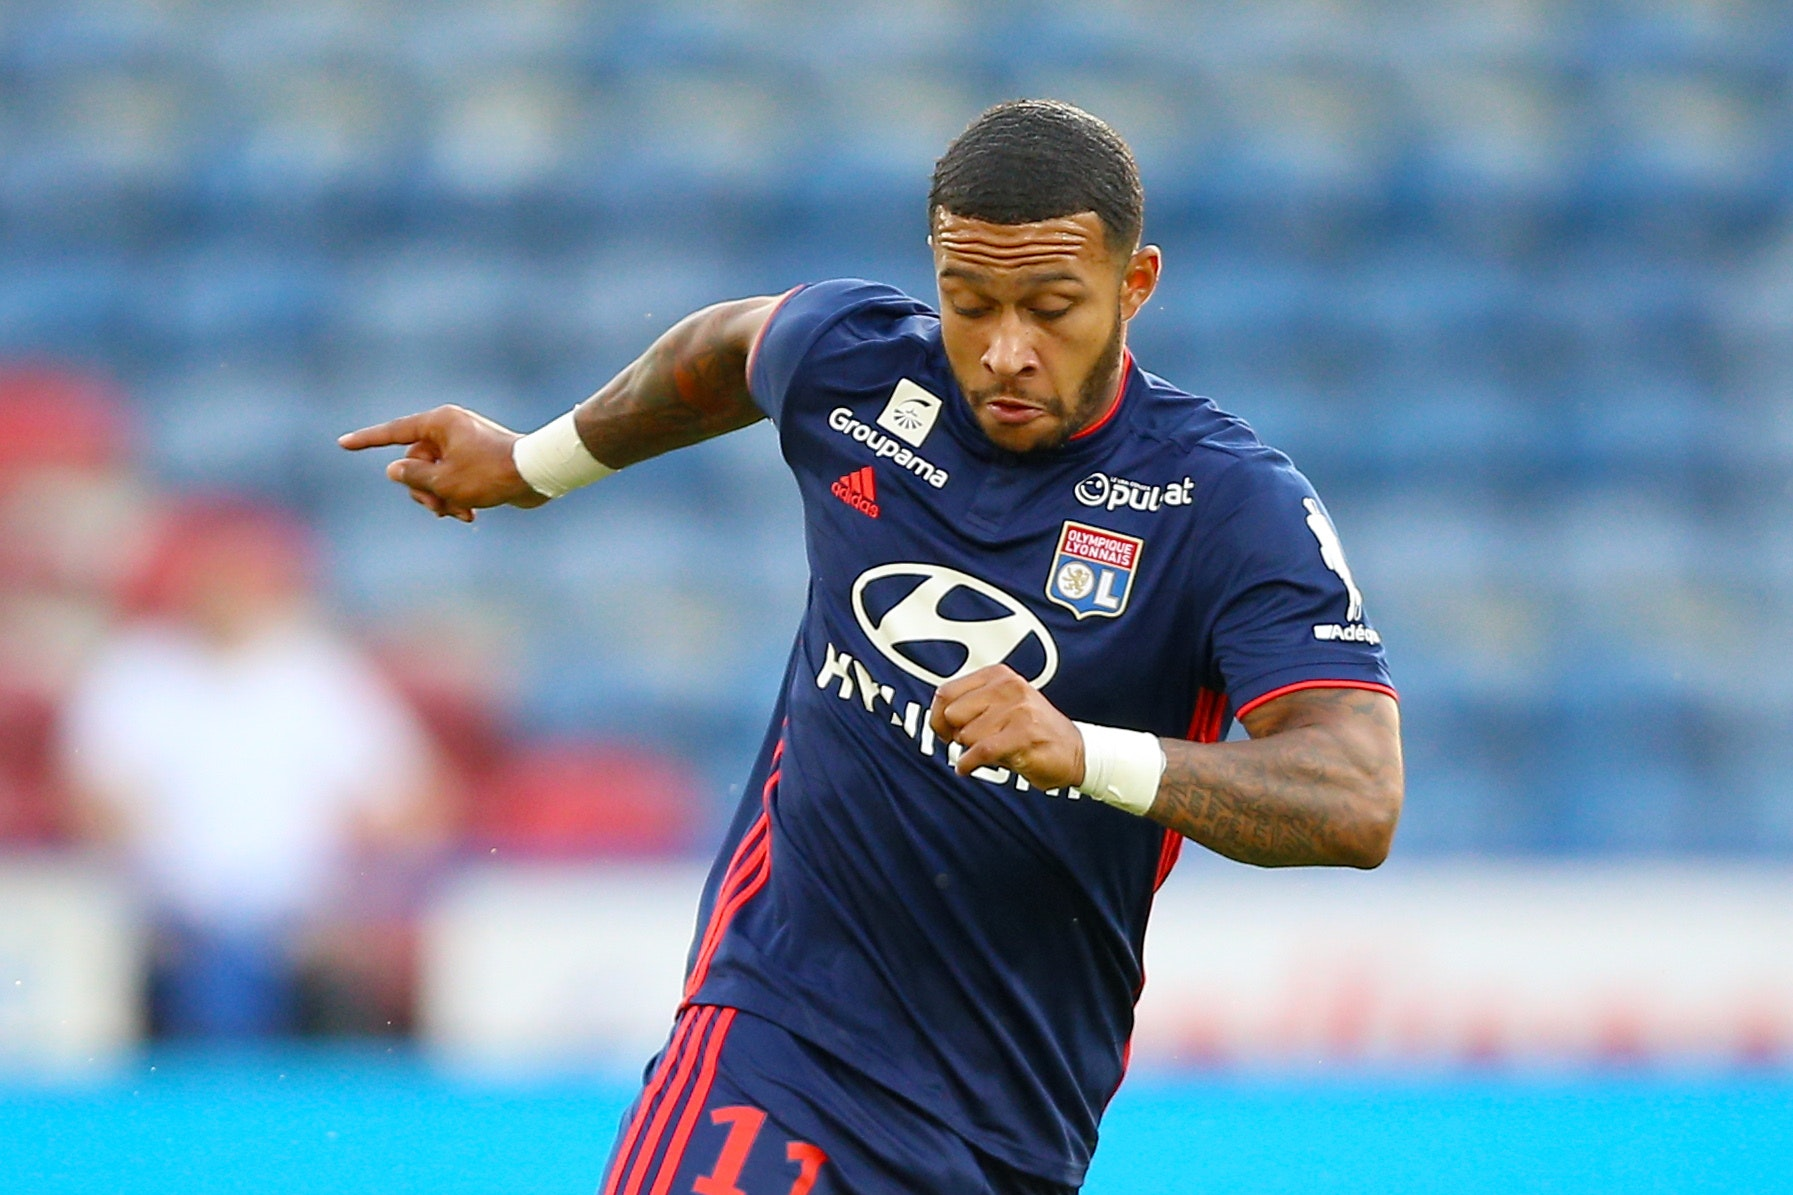 Memphis Depay struggled at Manchester United but is now excelling for Lyon